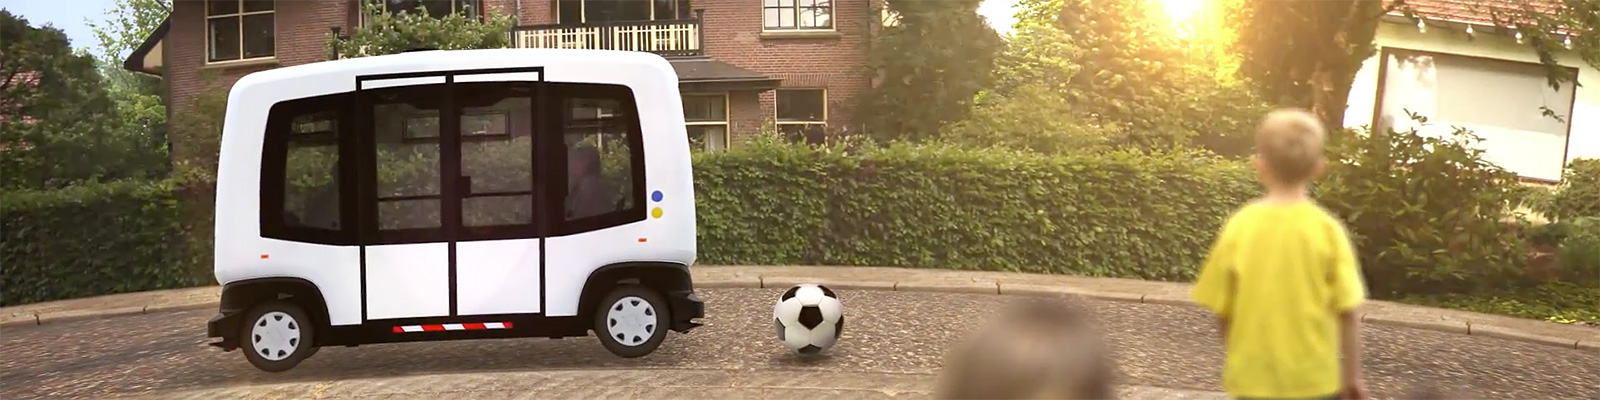 WEpods - Self driving vehicles in The Netherlands(YOUNGWISE)